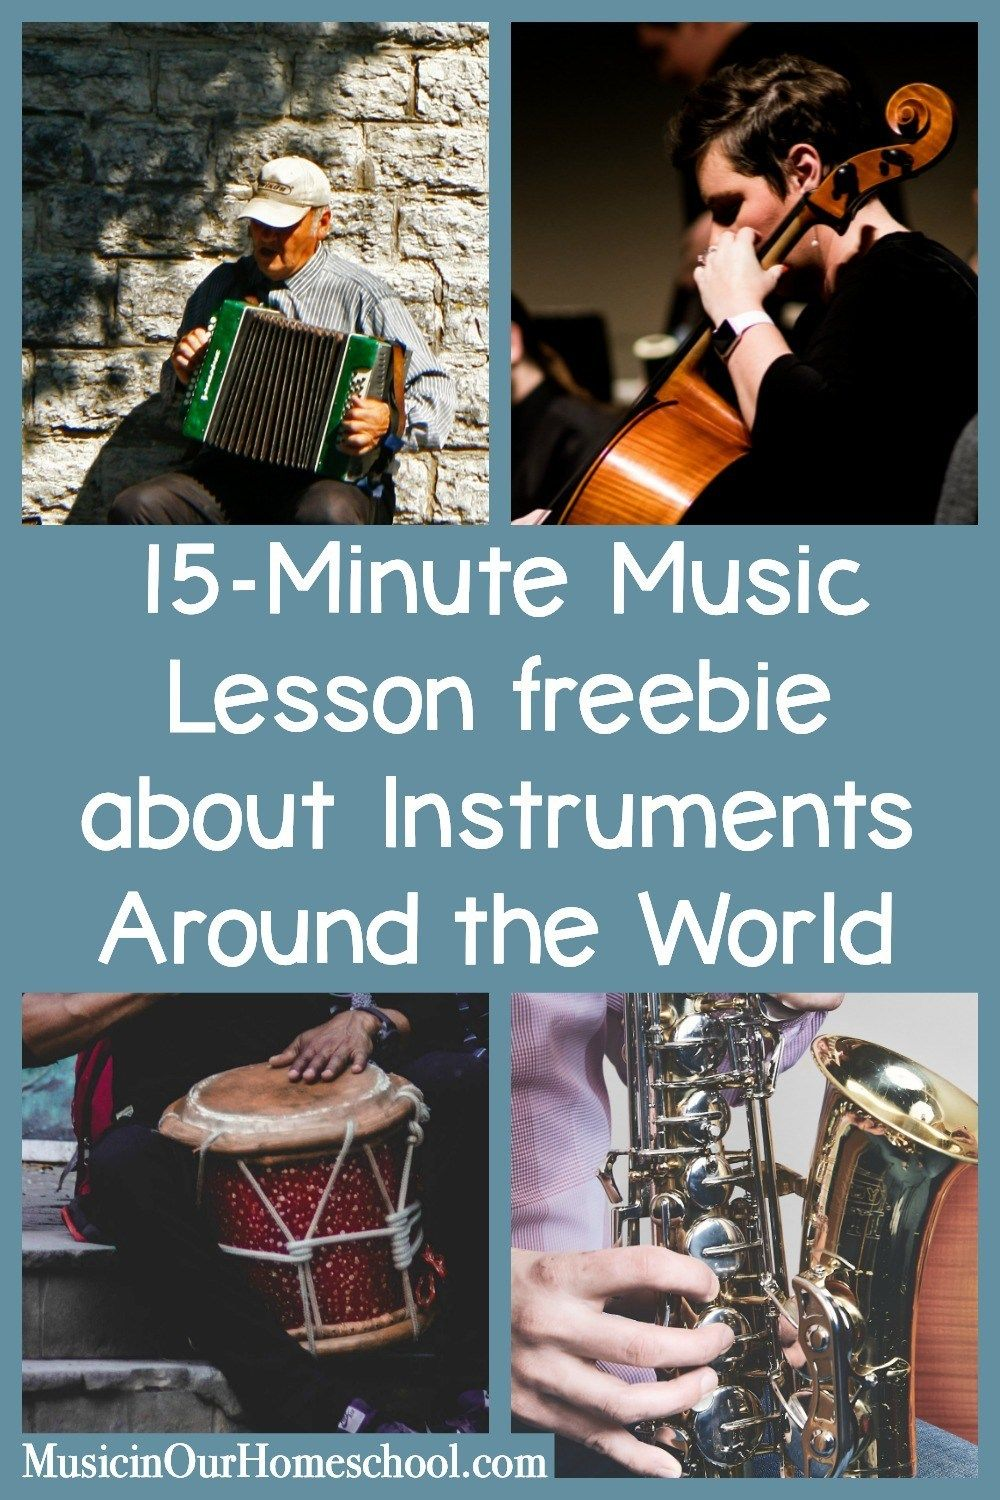 15-Minute Music Lesson About Instruments Around the World   Art